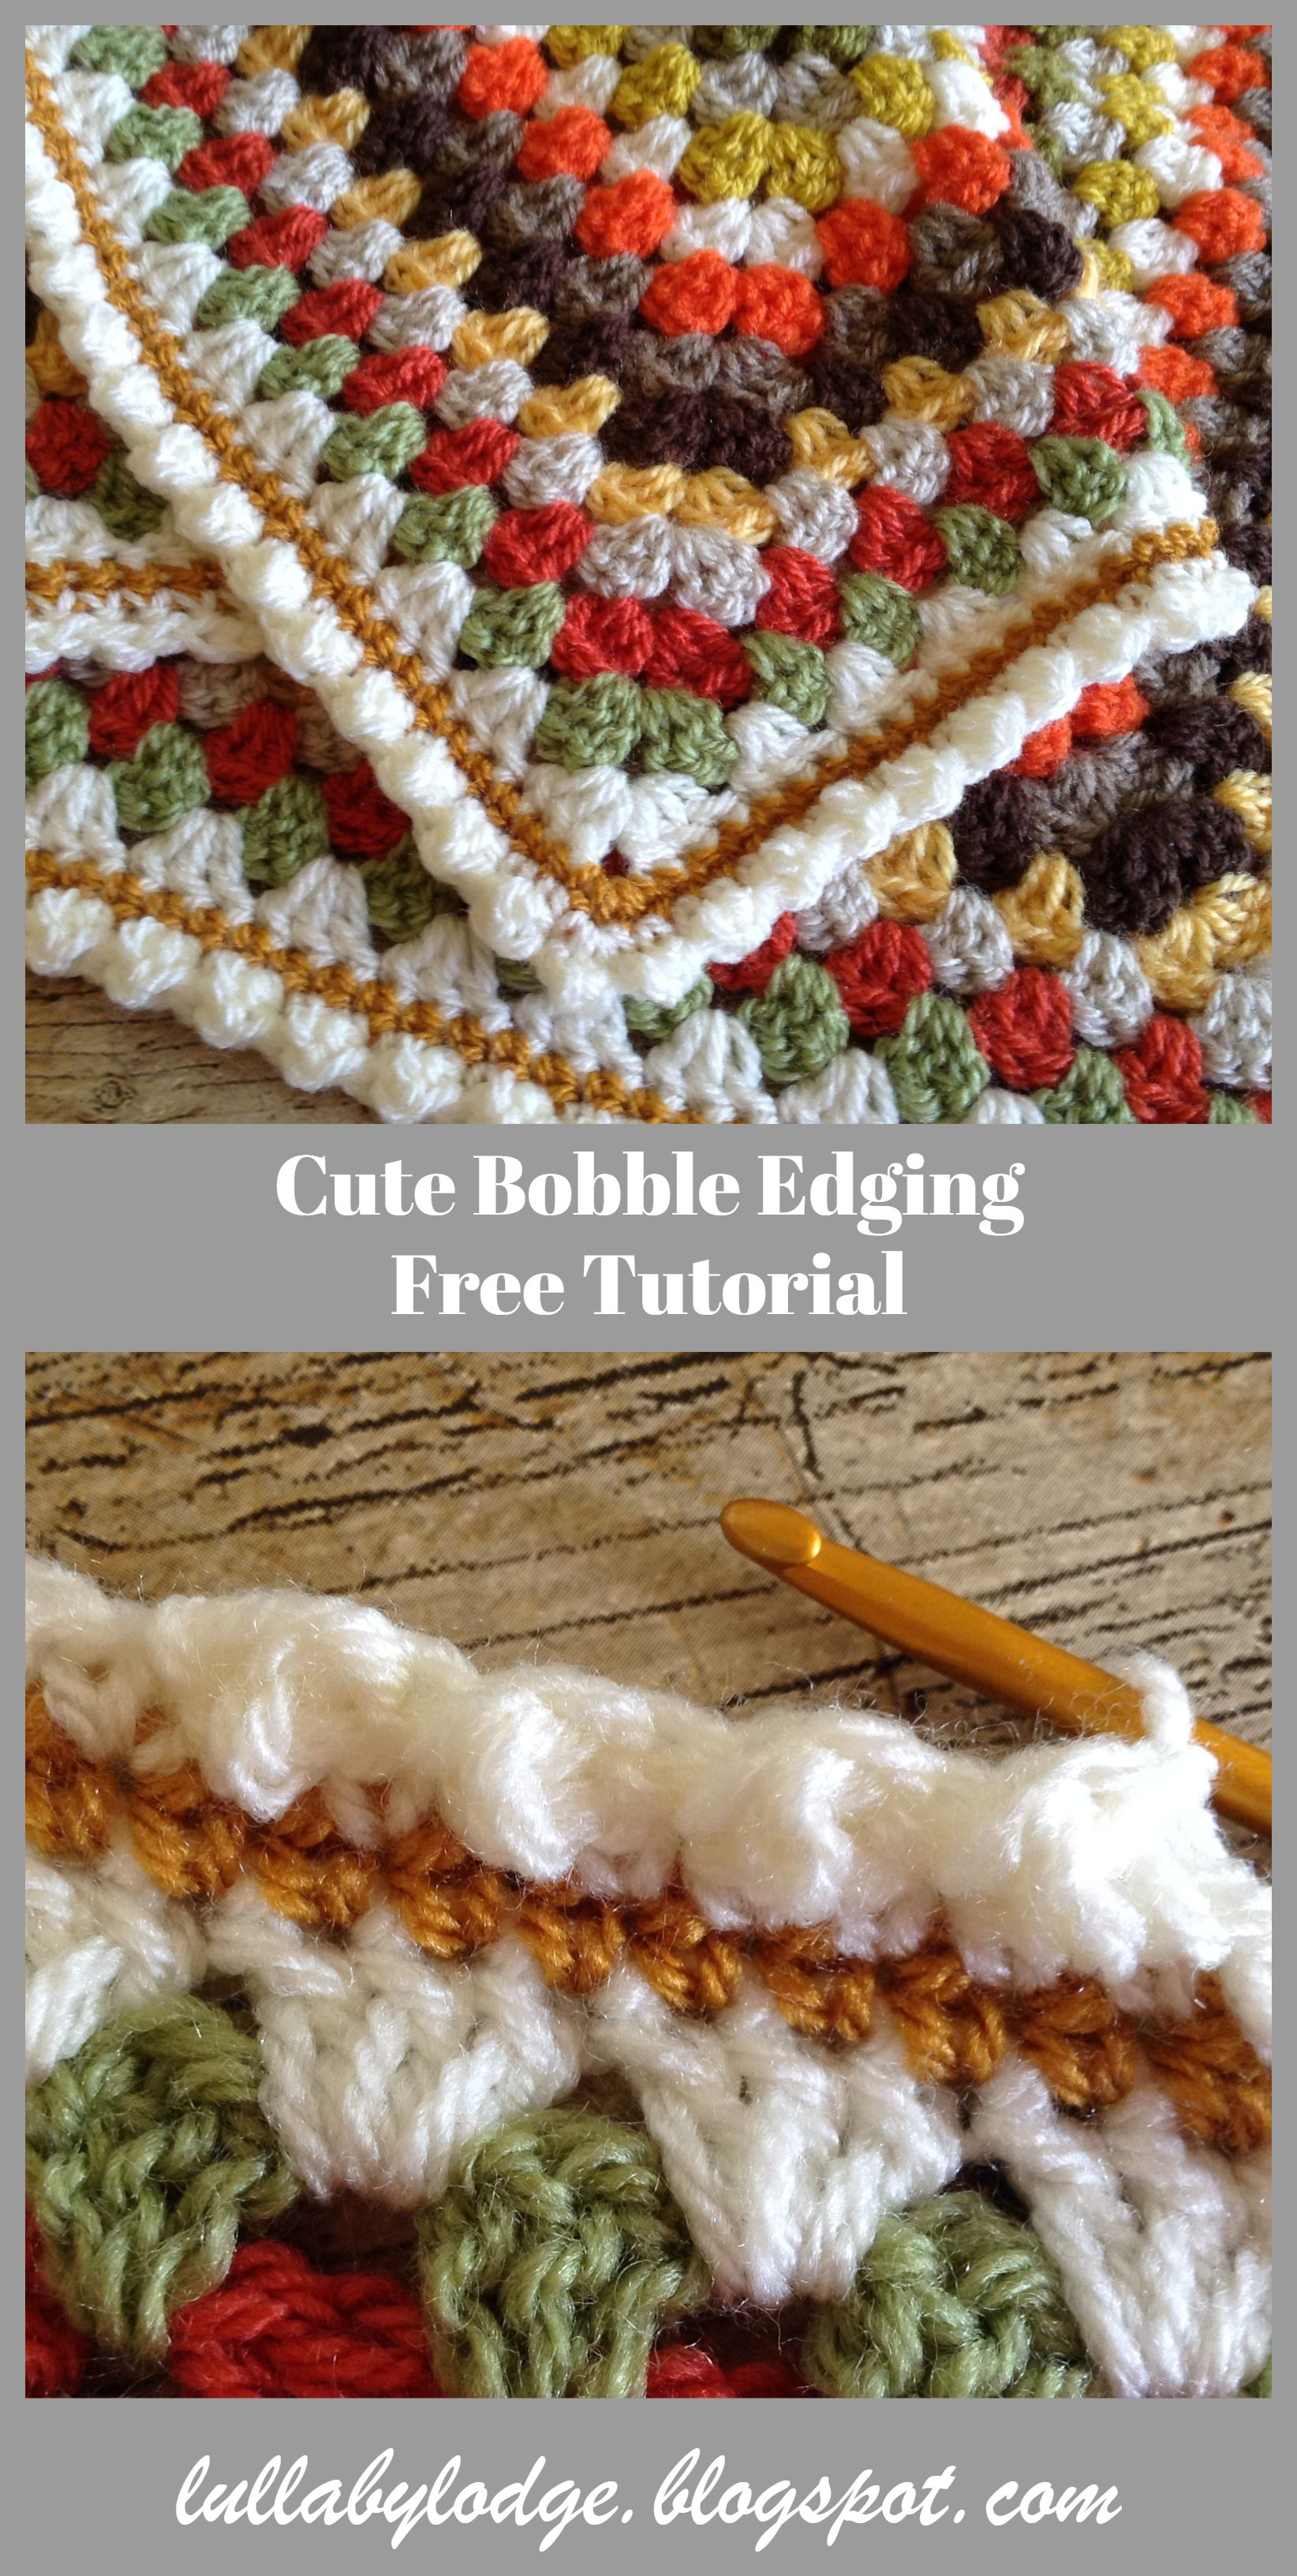 Cute Bobble Edging - Crochet Tutorial #crochettutorial